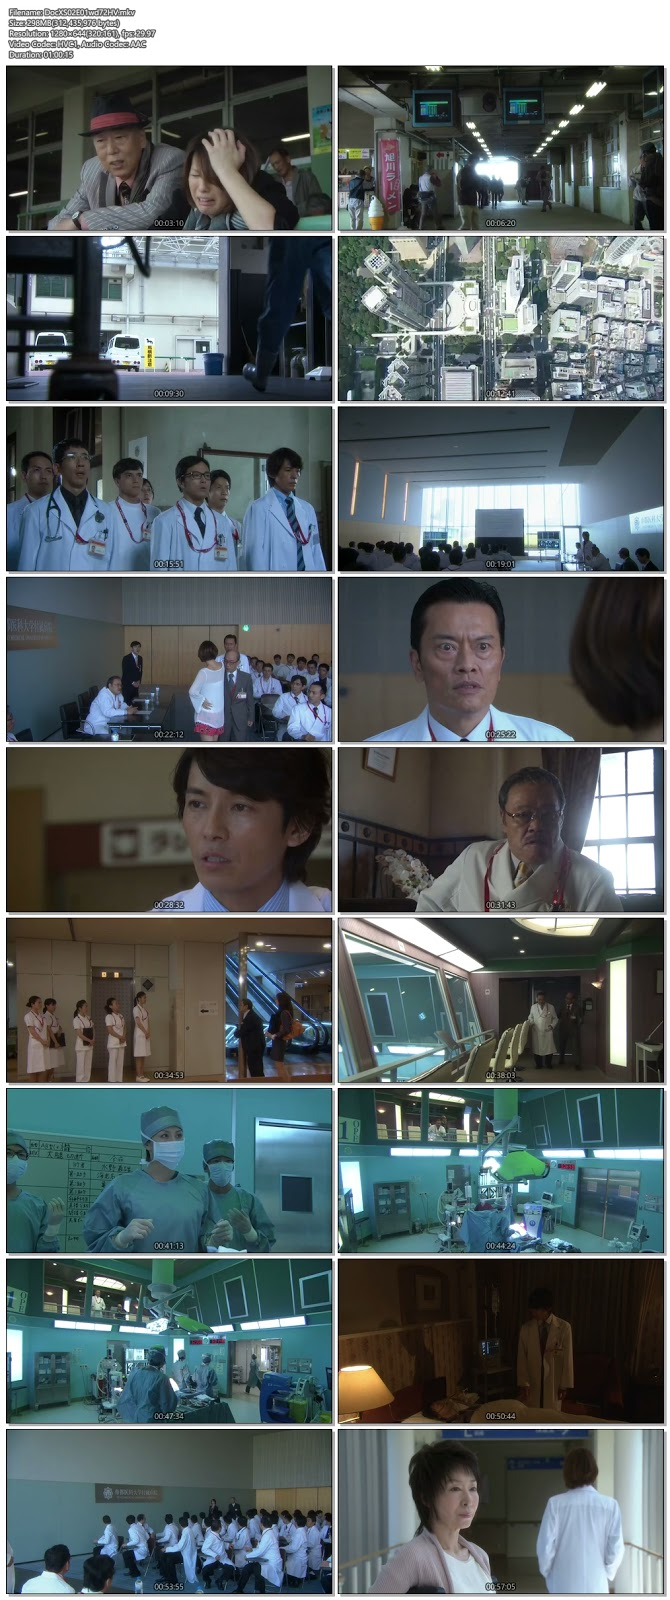 Doctor X S02 Dual Audio Complete Series 720p BRRip x265 HEVC dual audio hindi dubbed download and watch online only at world4ufree.vip